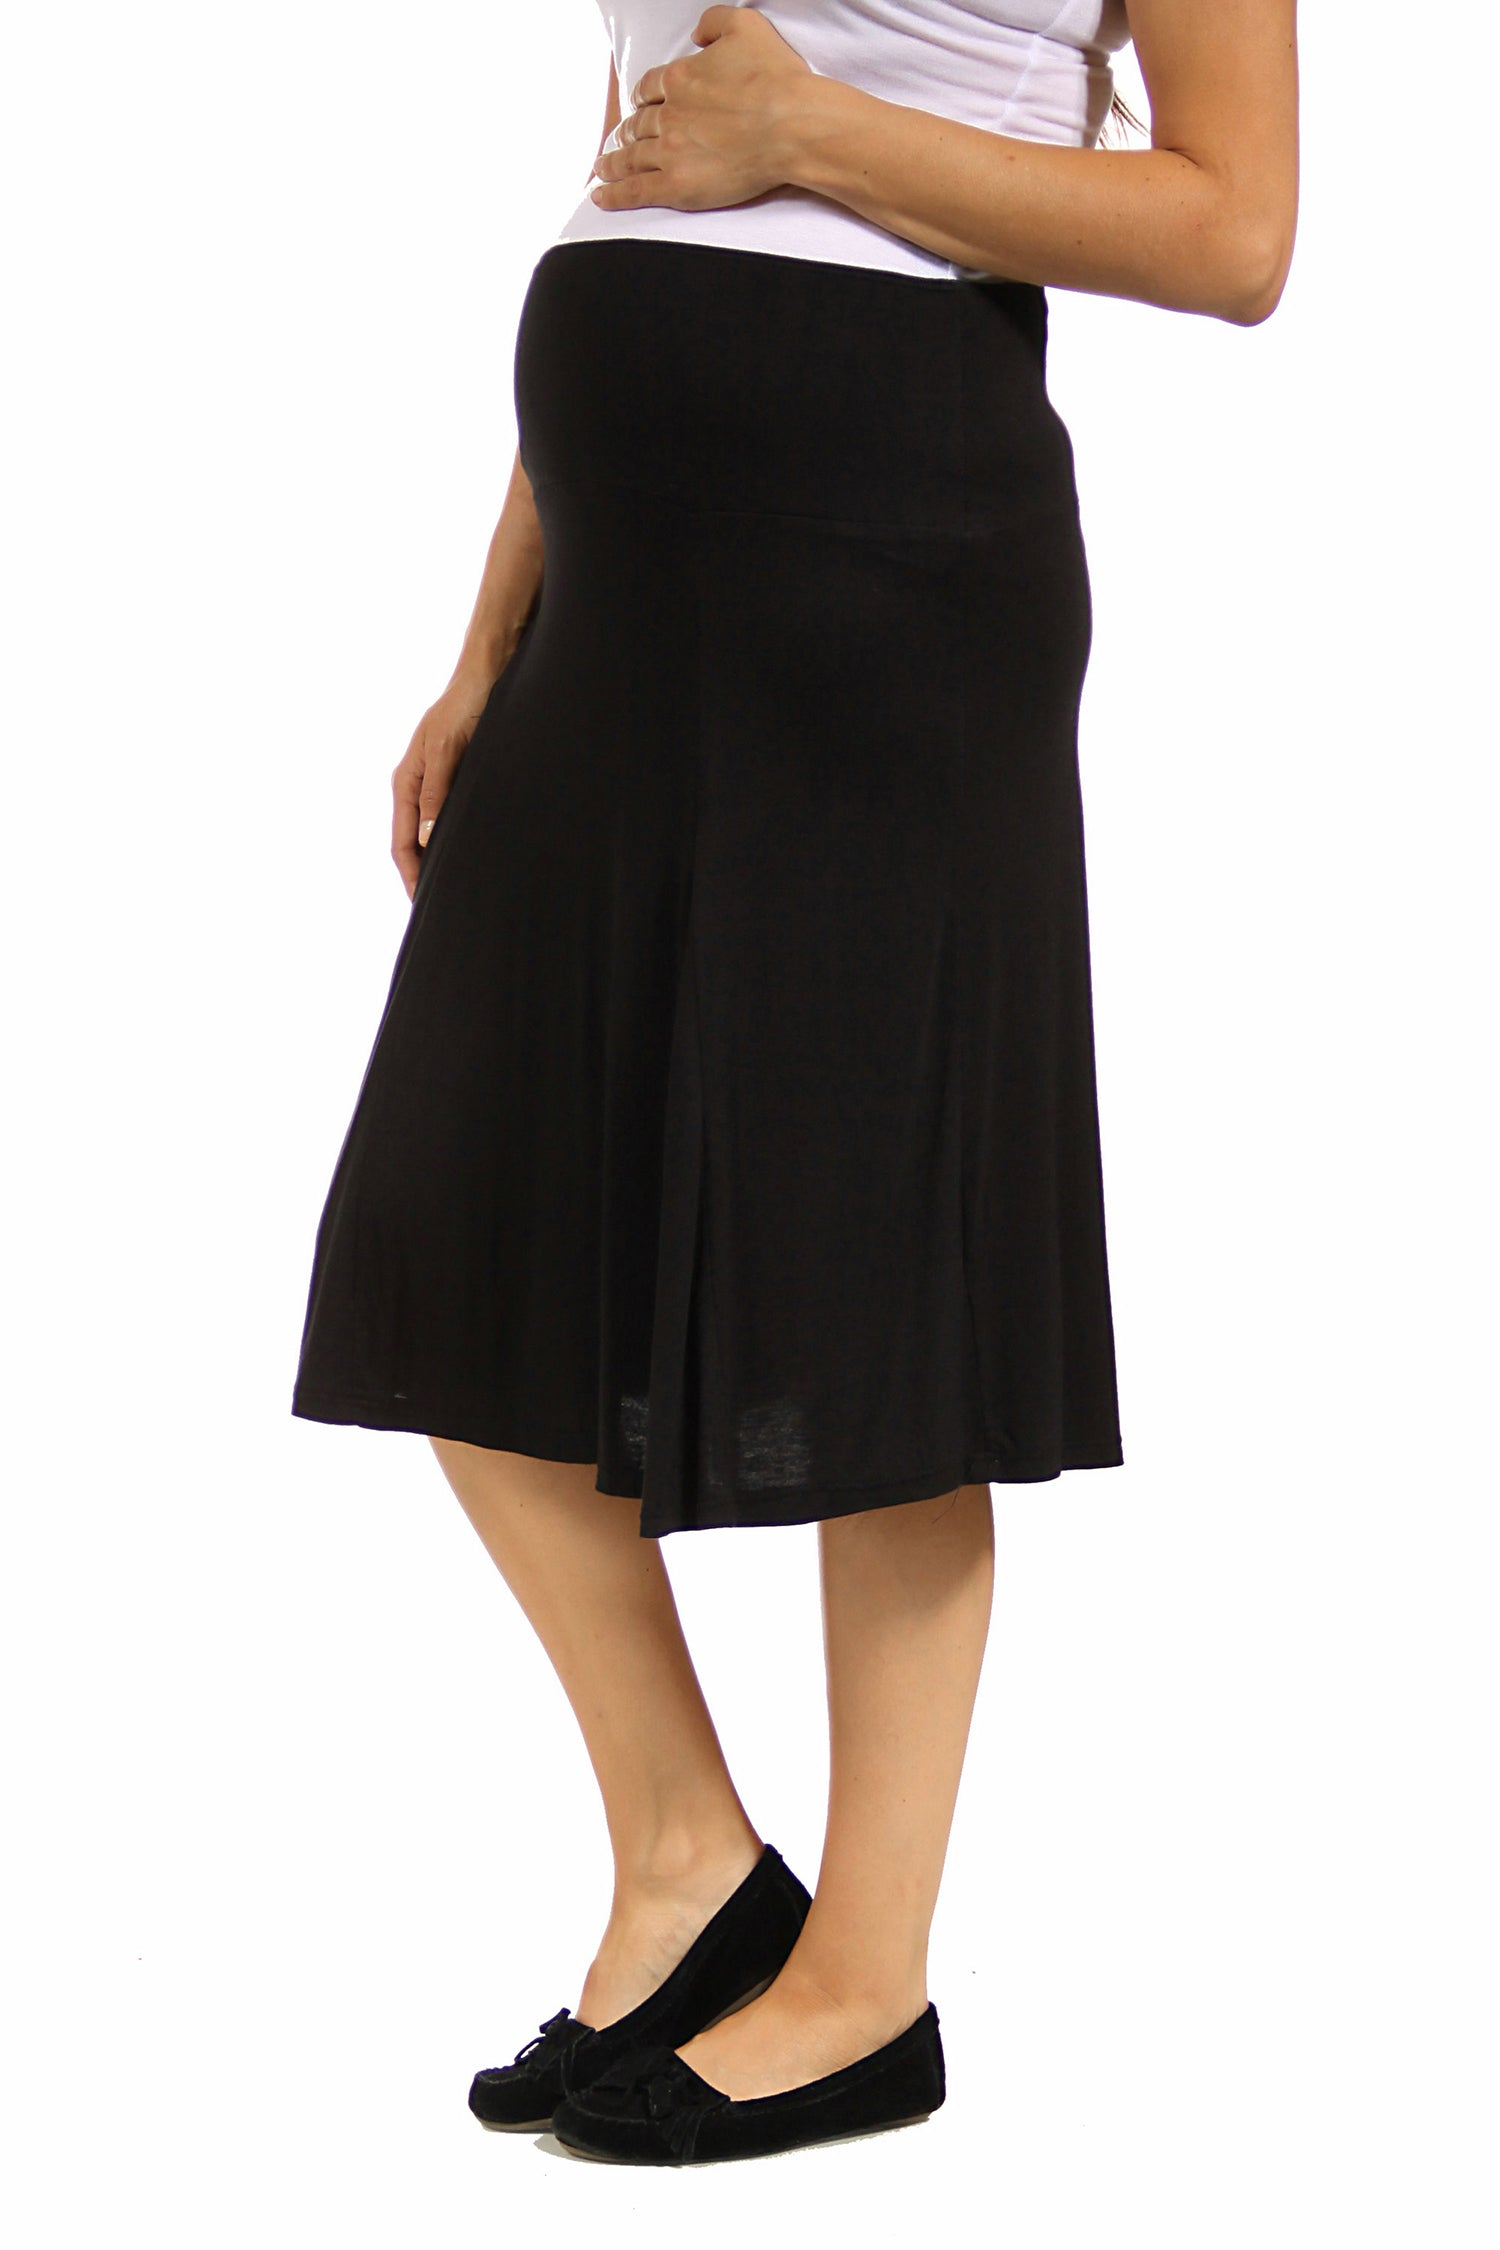 24seven Comfort Apparel Comfortable Black Maternity Midi Skirt-SKIRT-24Seven Comfort Apparel-BLACK-1X-24/7 Comfort Apparel